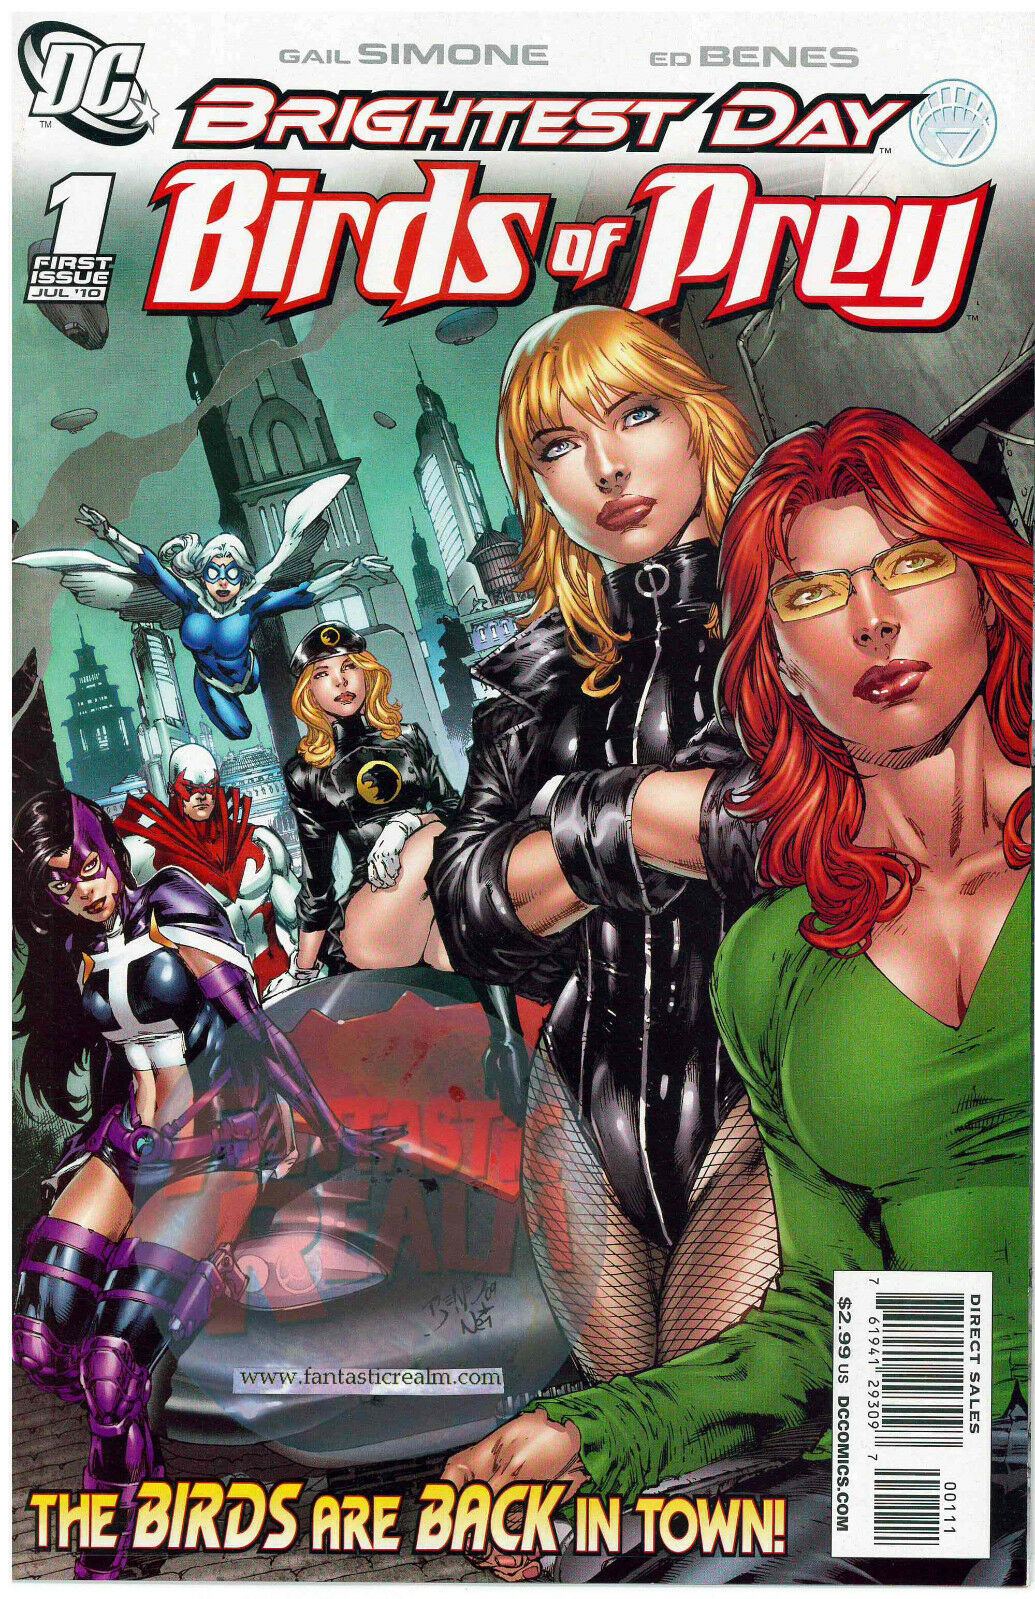 BRIGHTEST DAY: BIRDS OF PREY #1 WHITE CANARY 1ST APP. (2010) DC COMICS